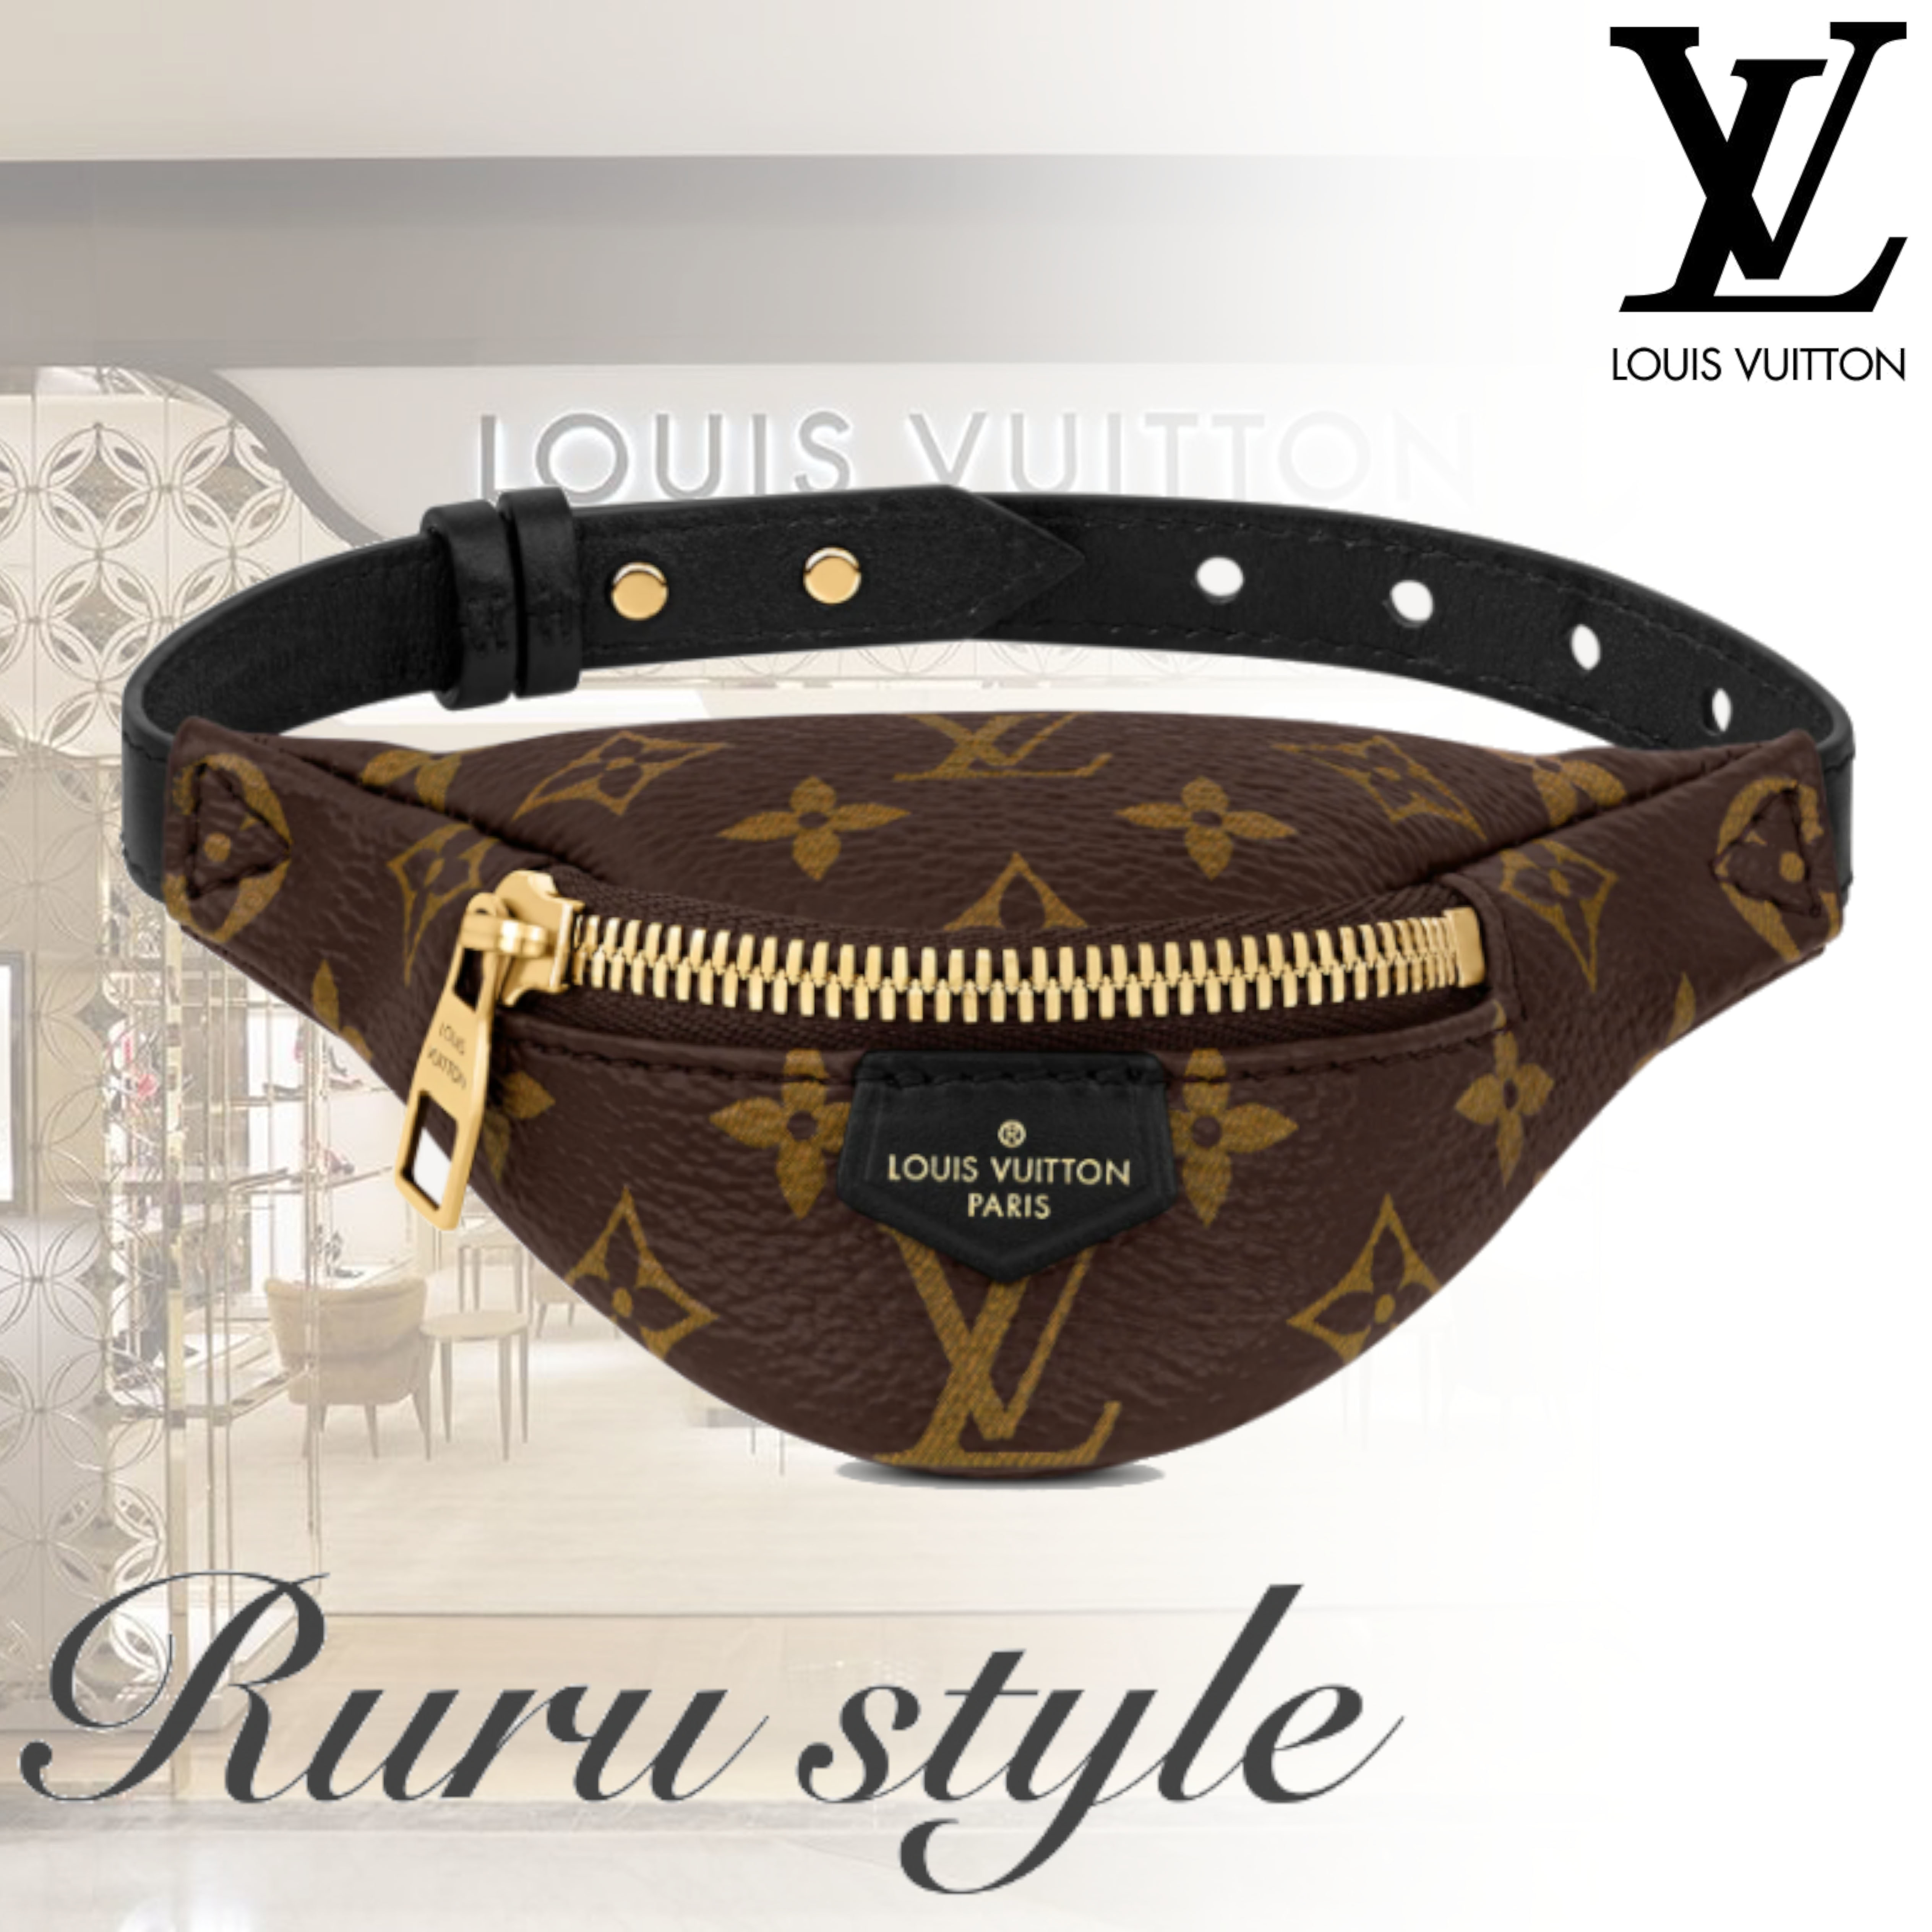 20/21AW最新作★ Louis Vuitton パーティーバンバッグ /ブラウン (Louis Vuitton/バッグ・カバンその他) M6562A